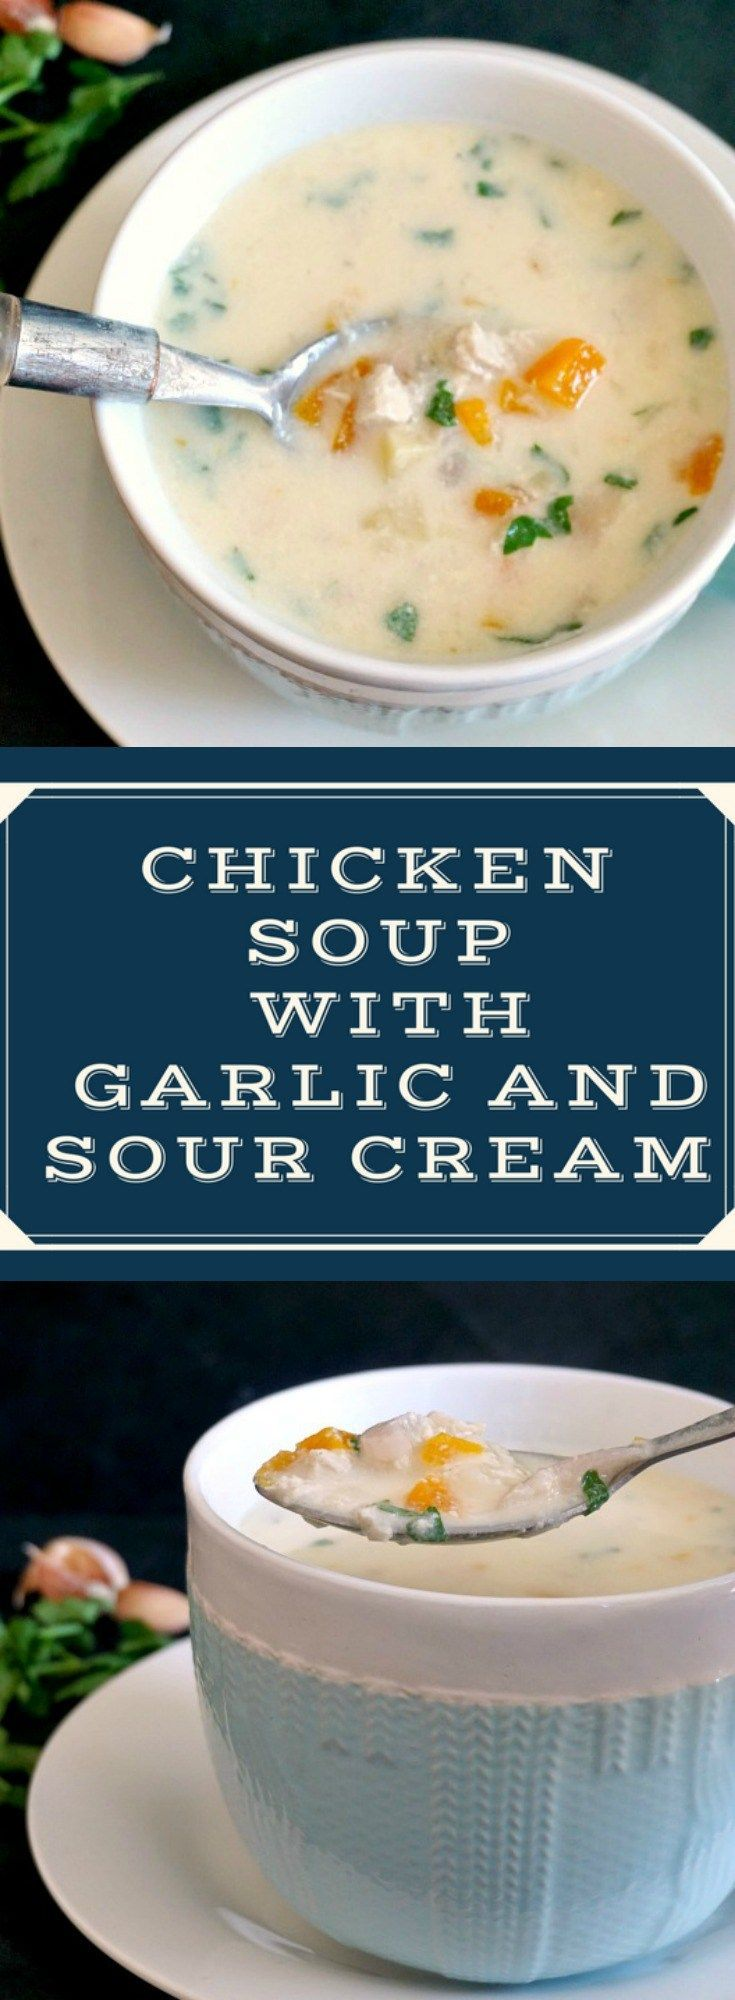 Chicken soup with garlic and sour cream or the Romanian Ciorba Radauteana makes a fantastic natural remedy against cold and flu. Soothing and delicious, an easy healthy soup that will become a family favourite.